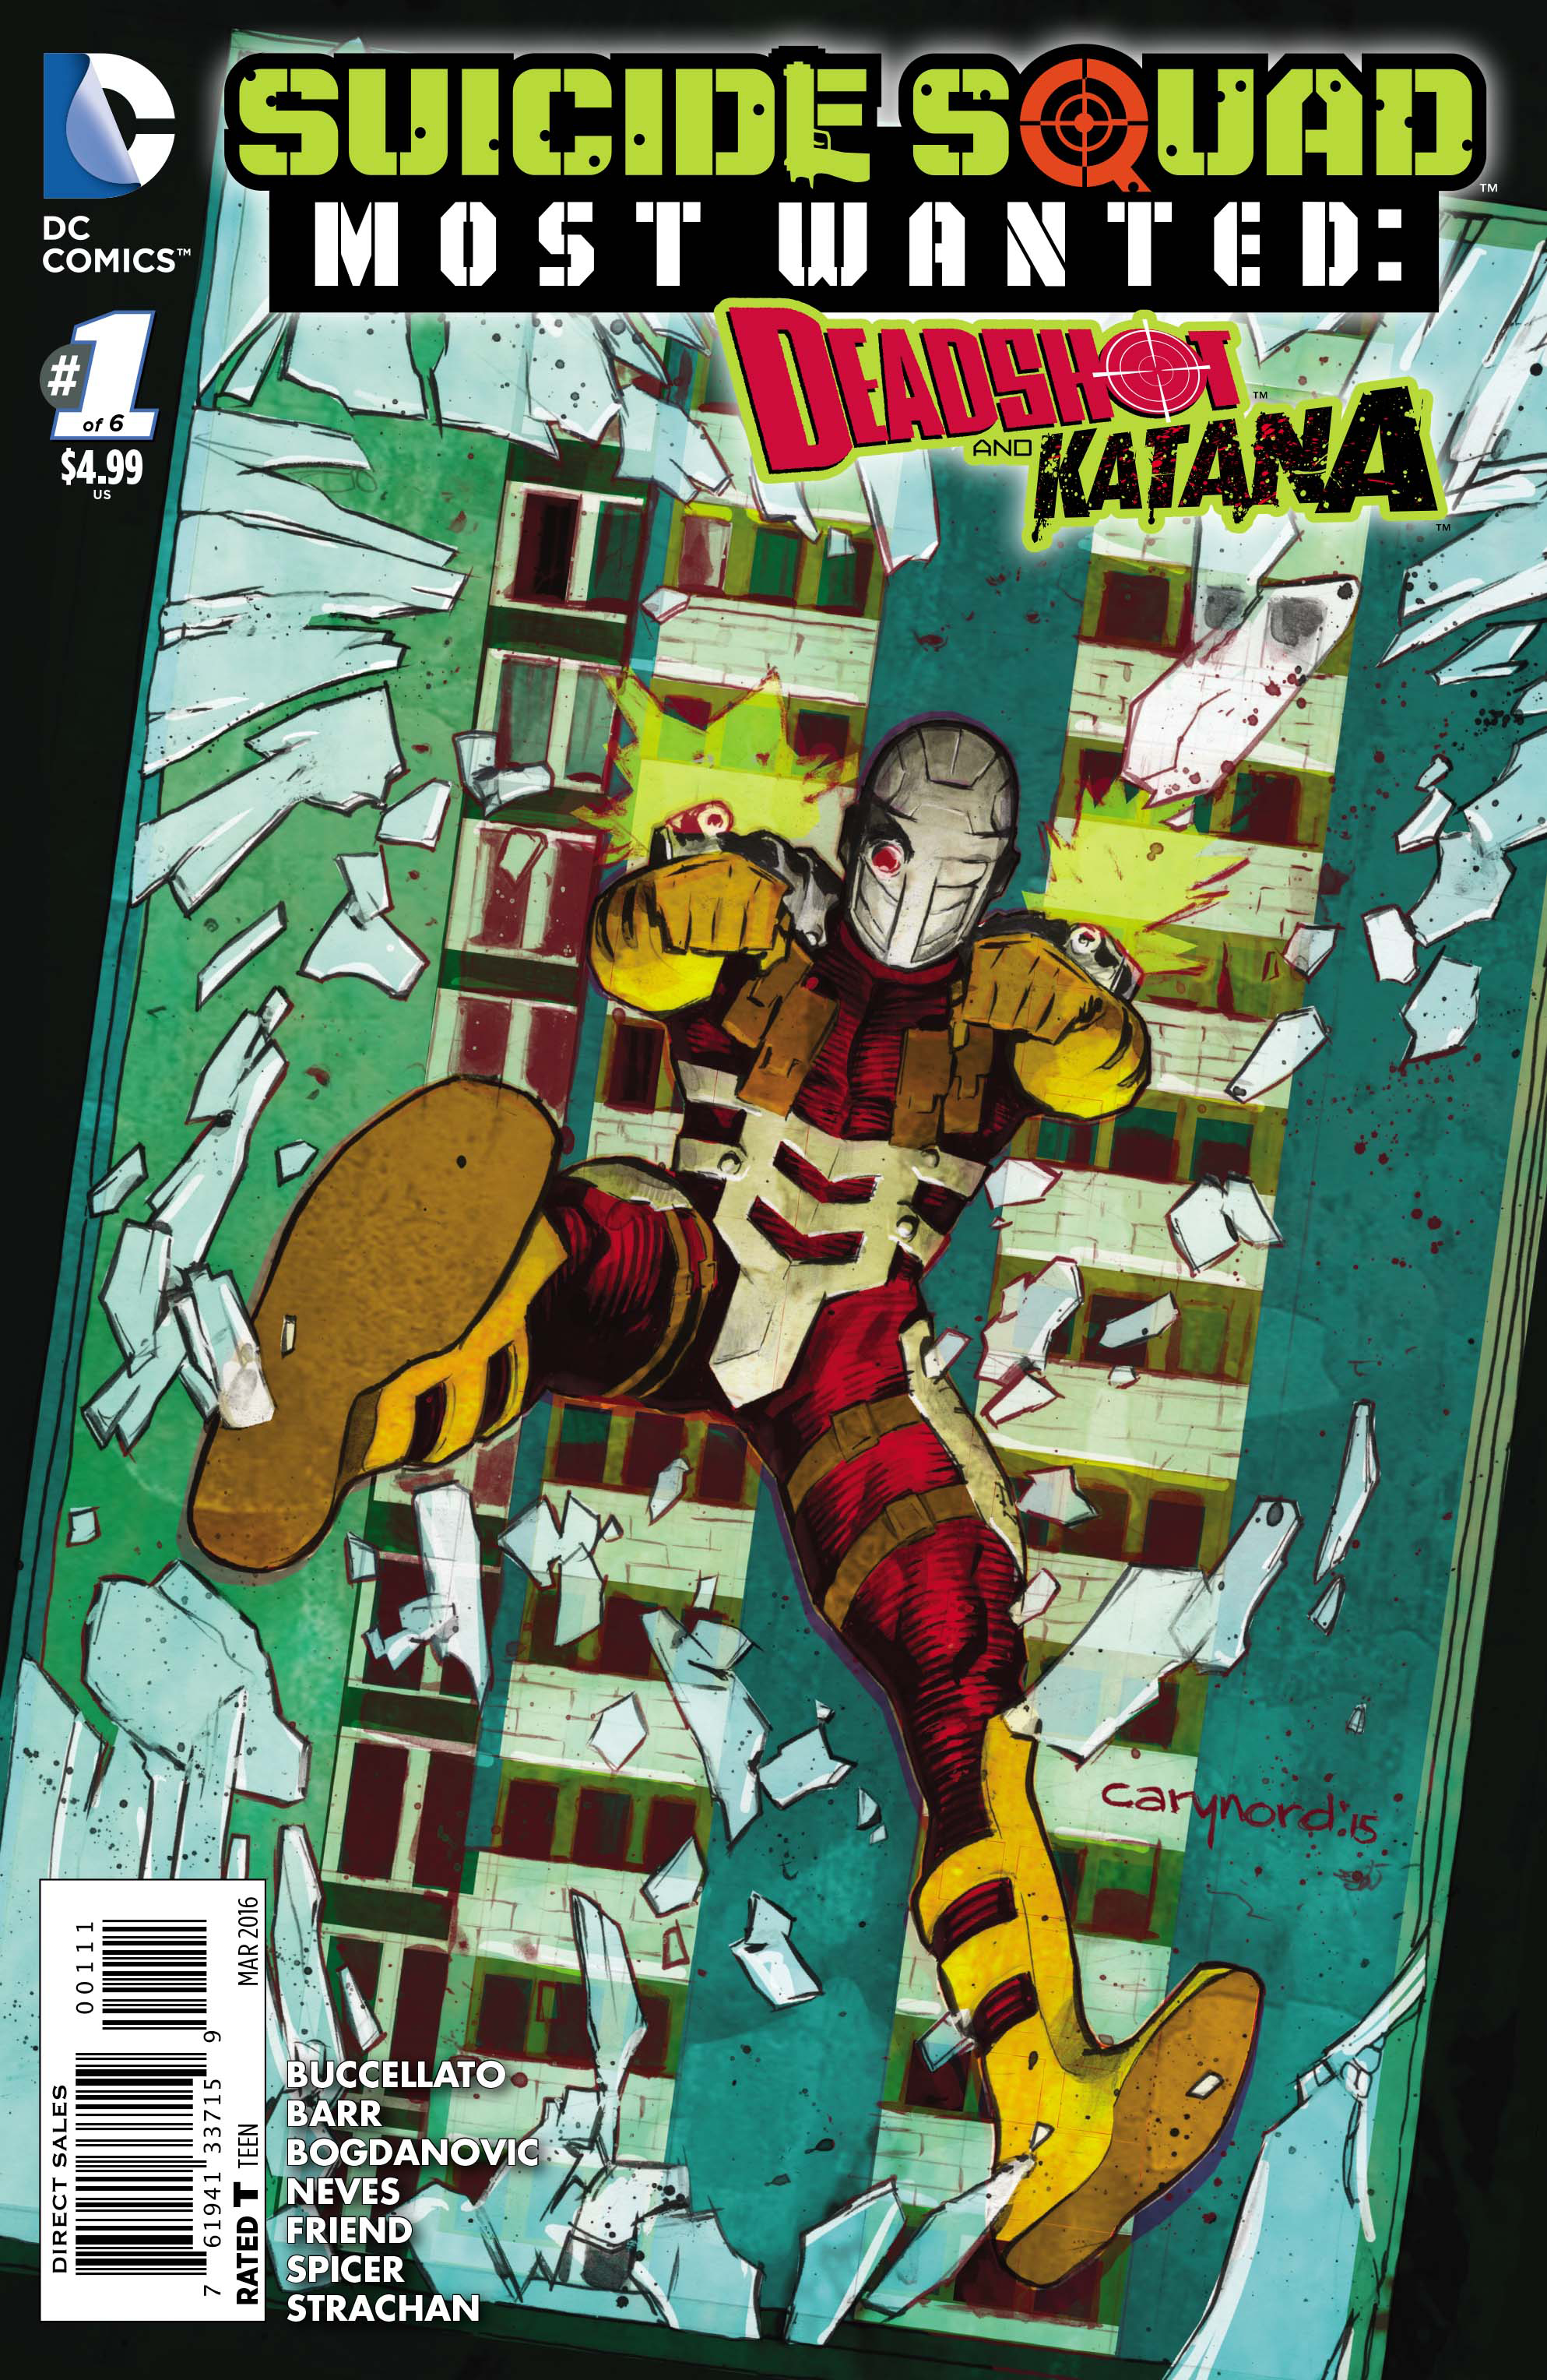 SUICIDE SQUAD MOST WANTED DEADSHOT KATANA #1